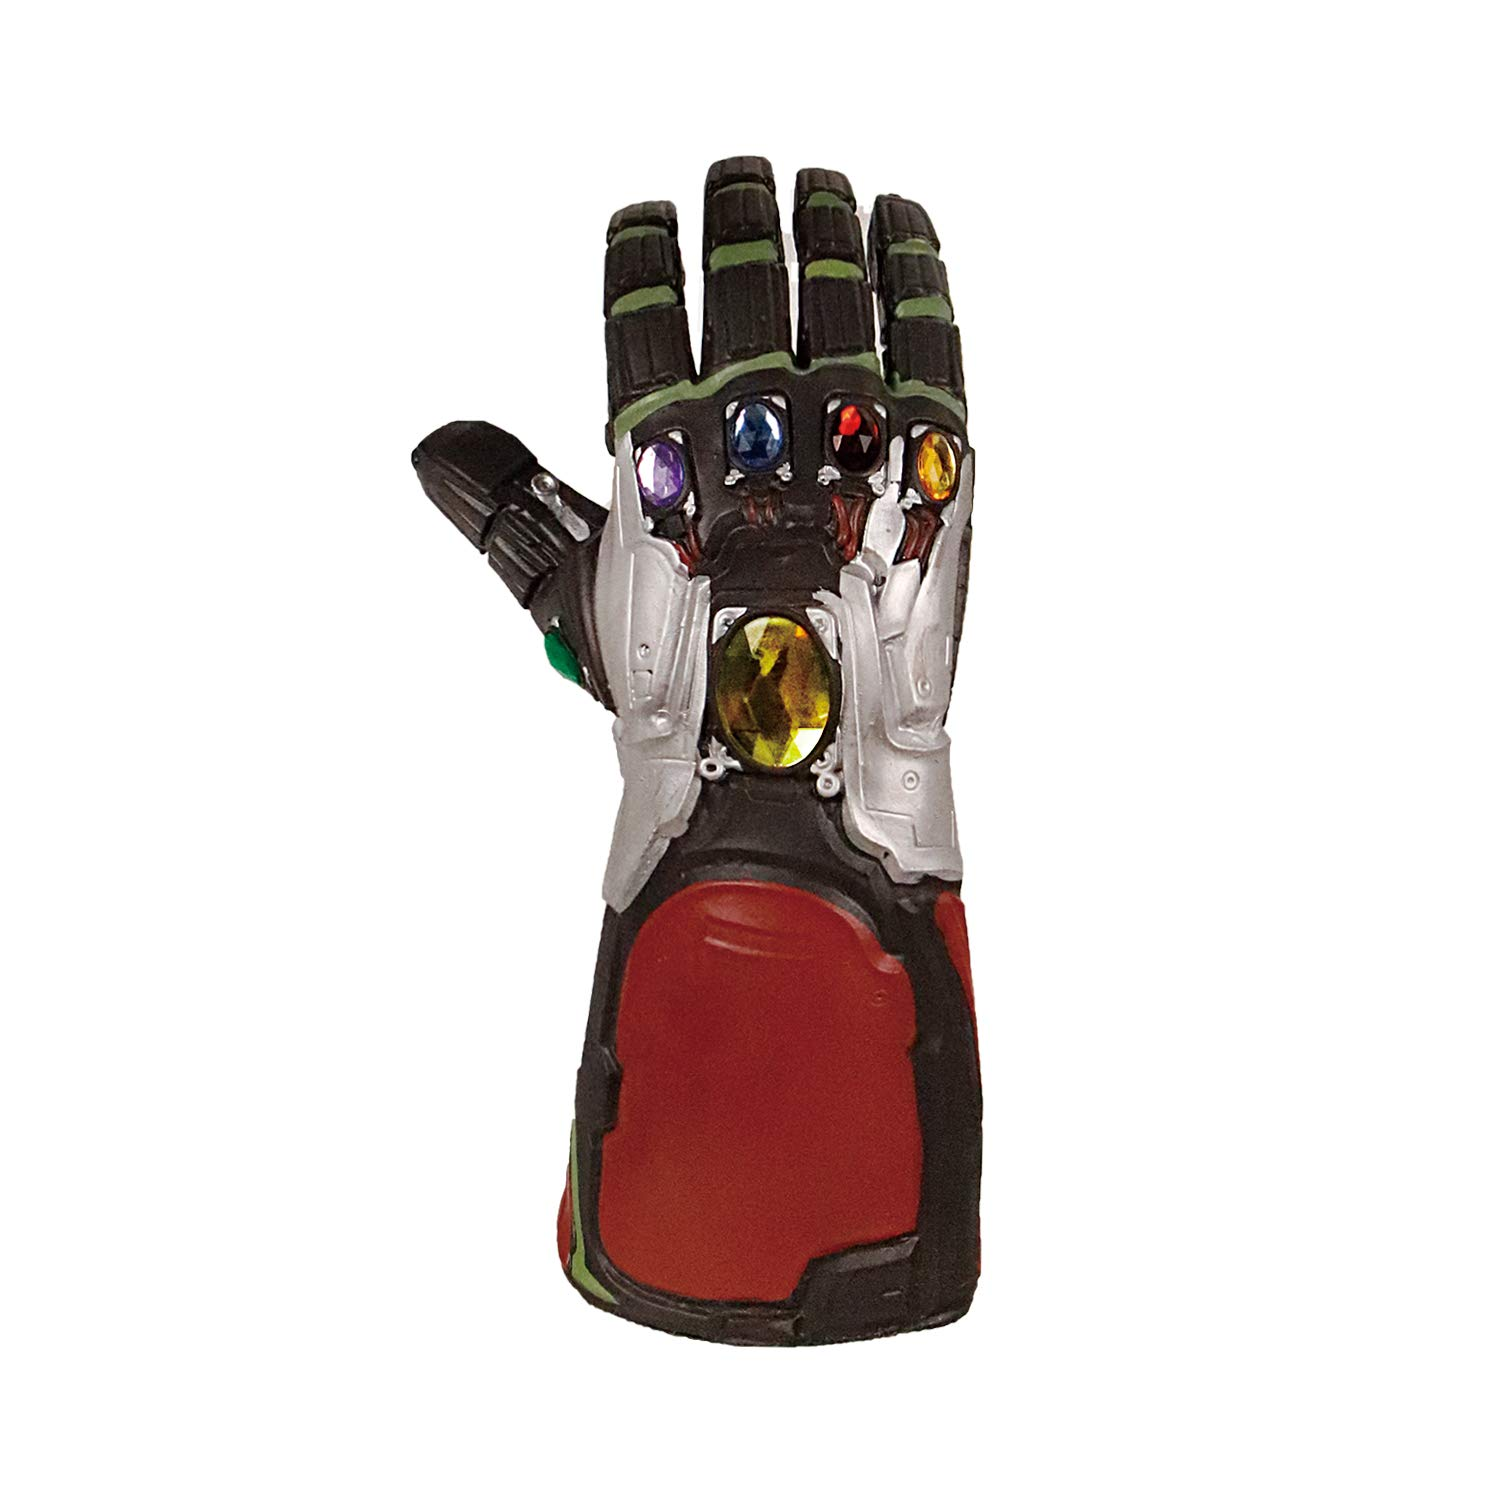 Marvel Arm Avengers 4 Endgame Black Infinity Gauntlet Latex Thanos Gloves Iron Man Fist for The Avengers Cosplay Prop Costume